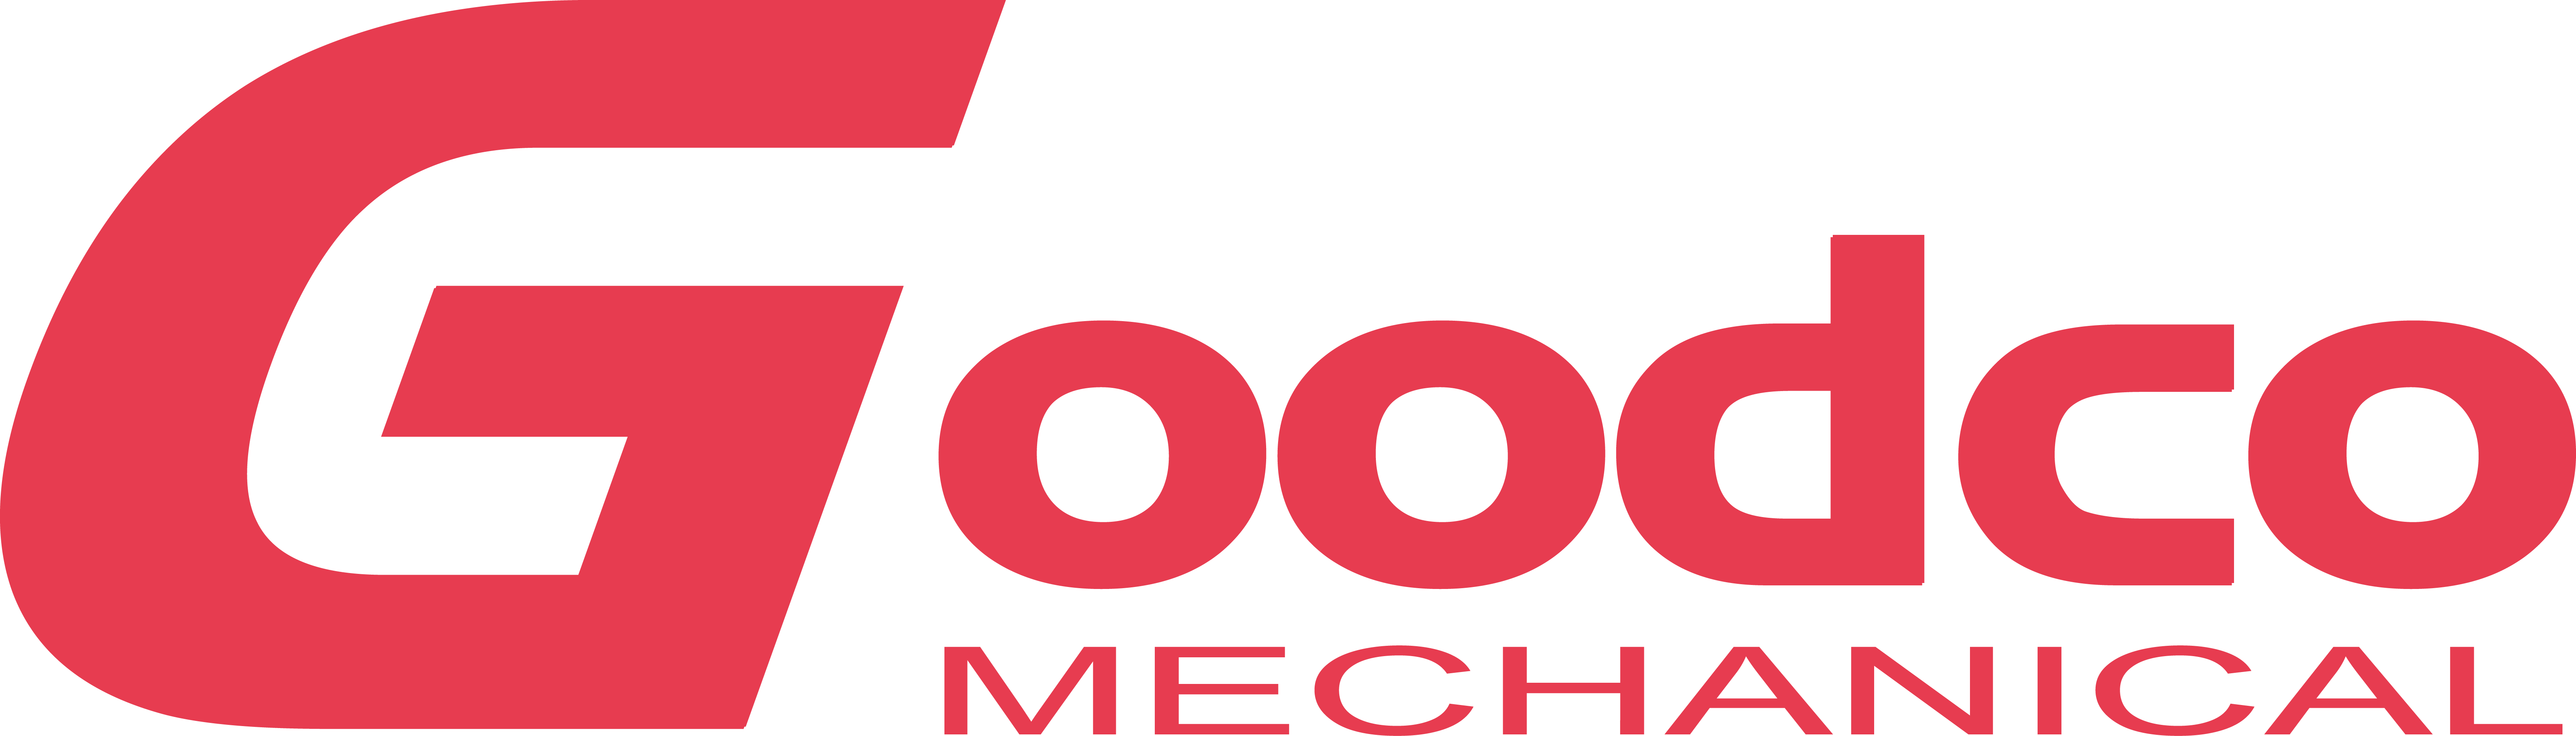 Goodco Mechanical